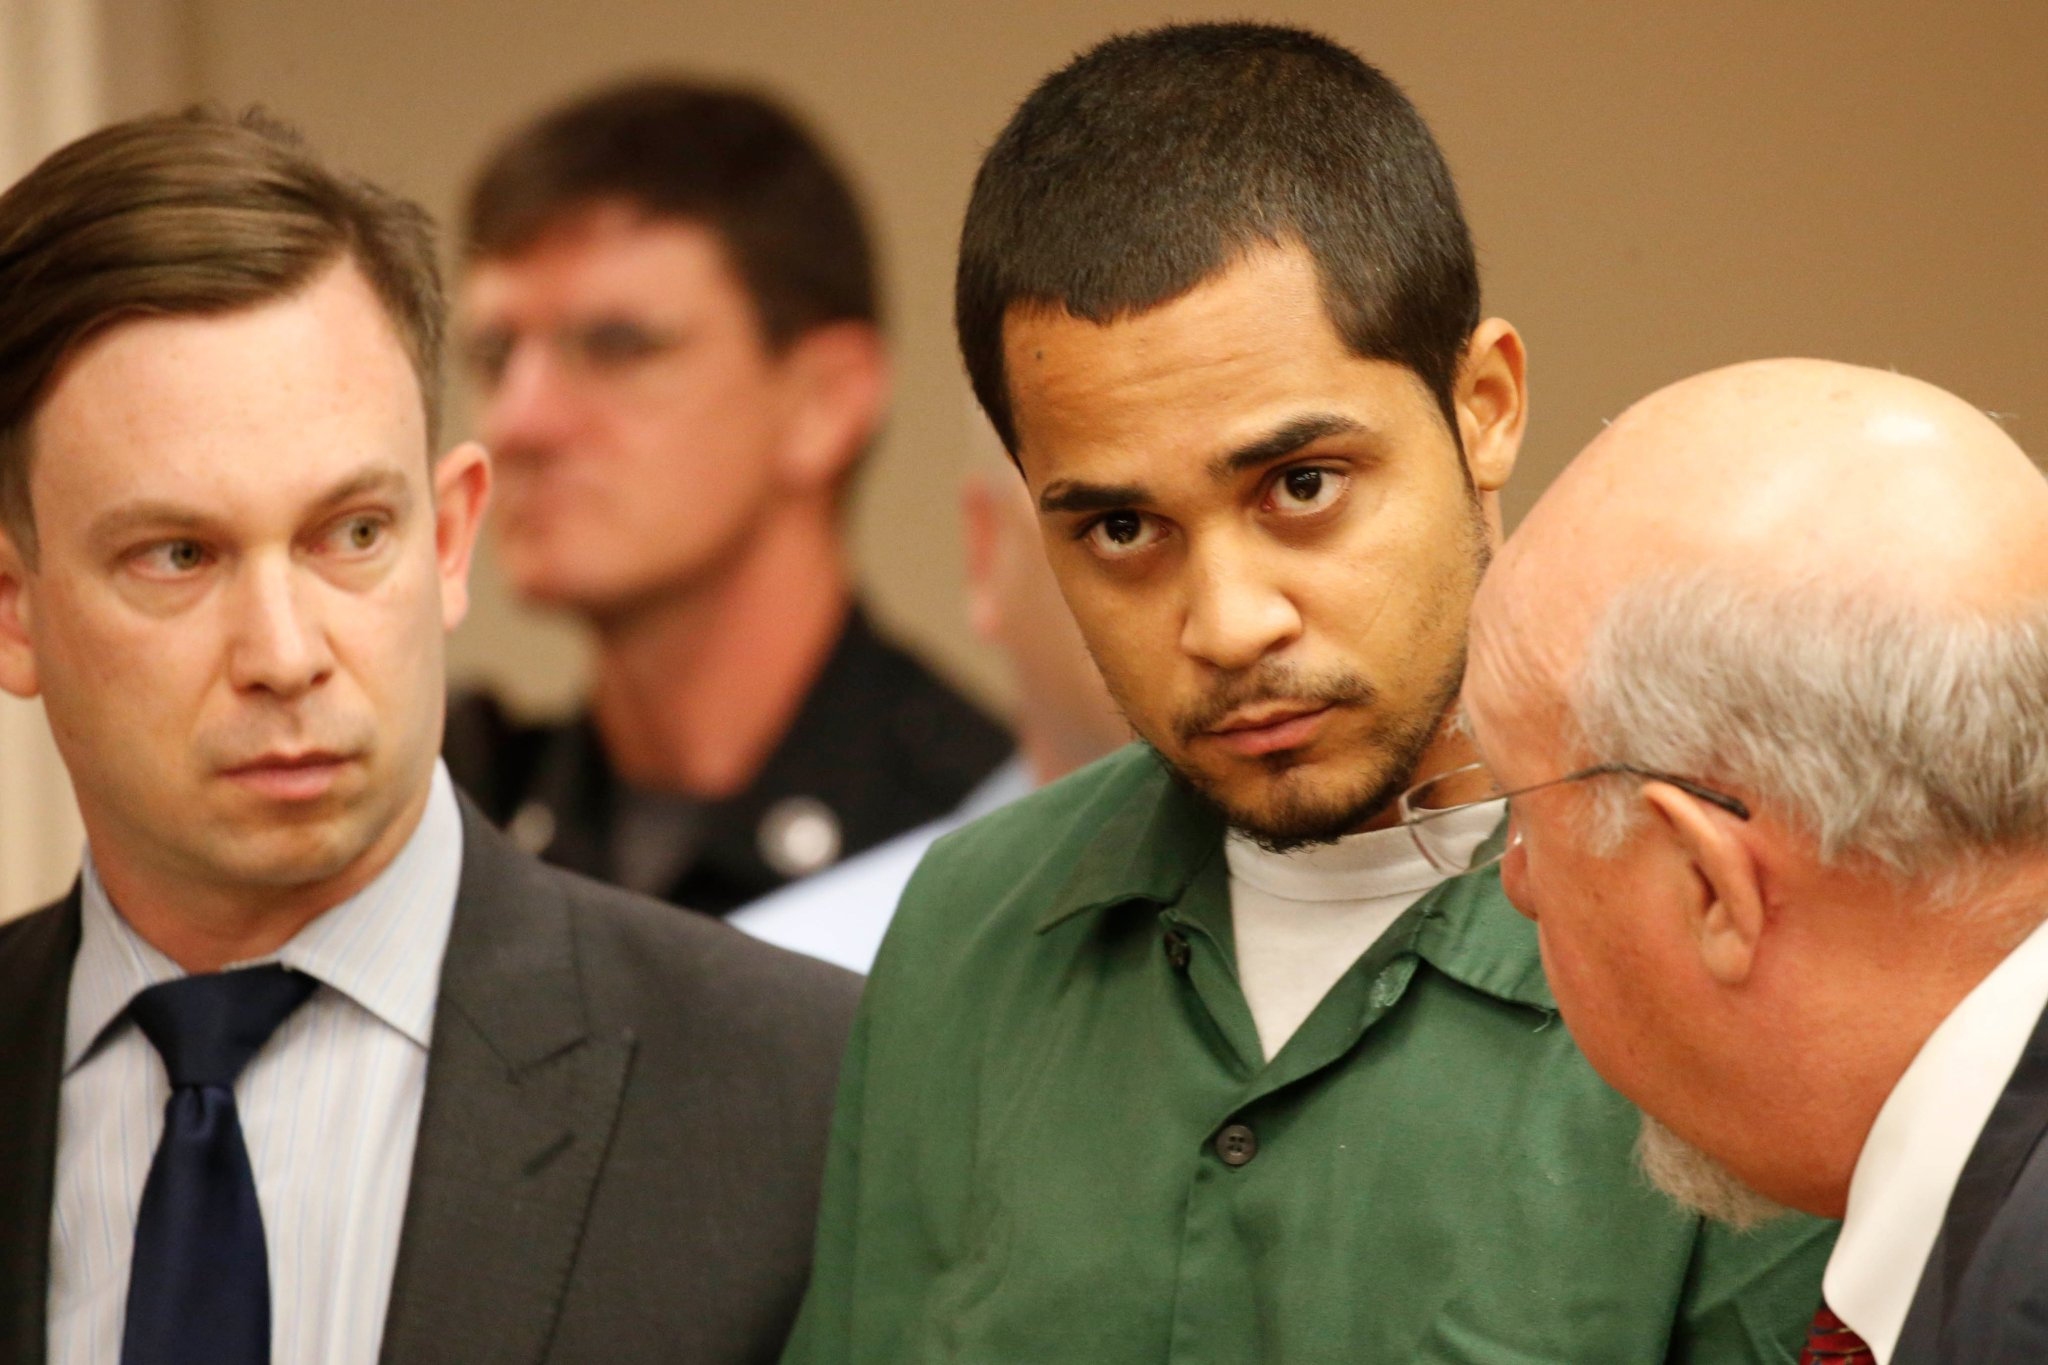 Jorge Suarez, center, was sentenced to 25-years-to-life. (Buffalo News file photo)